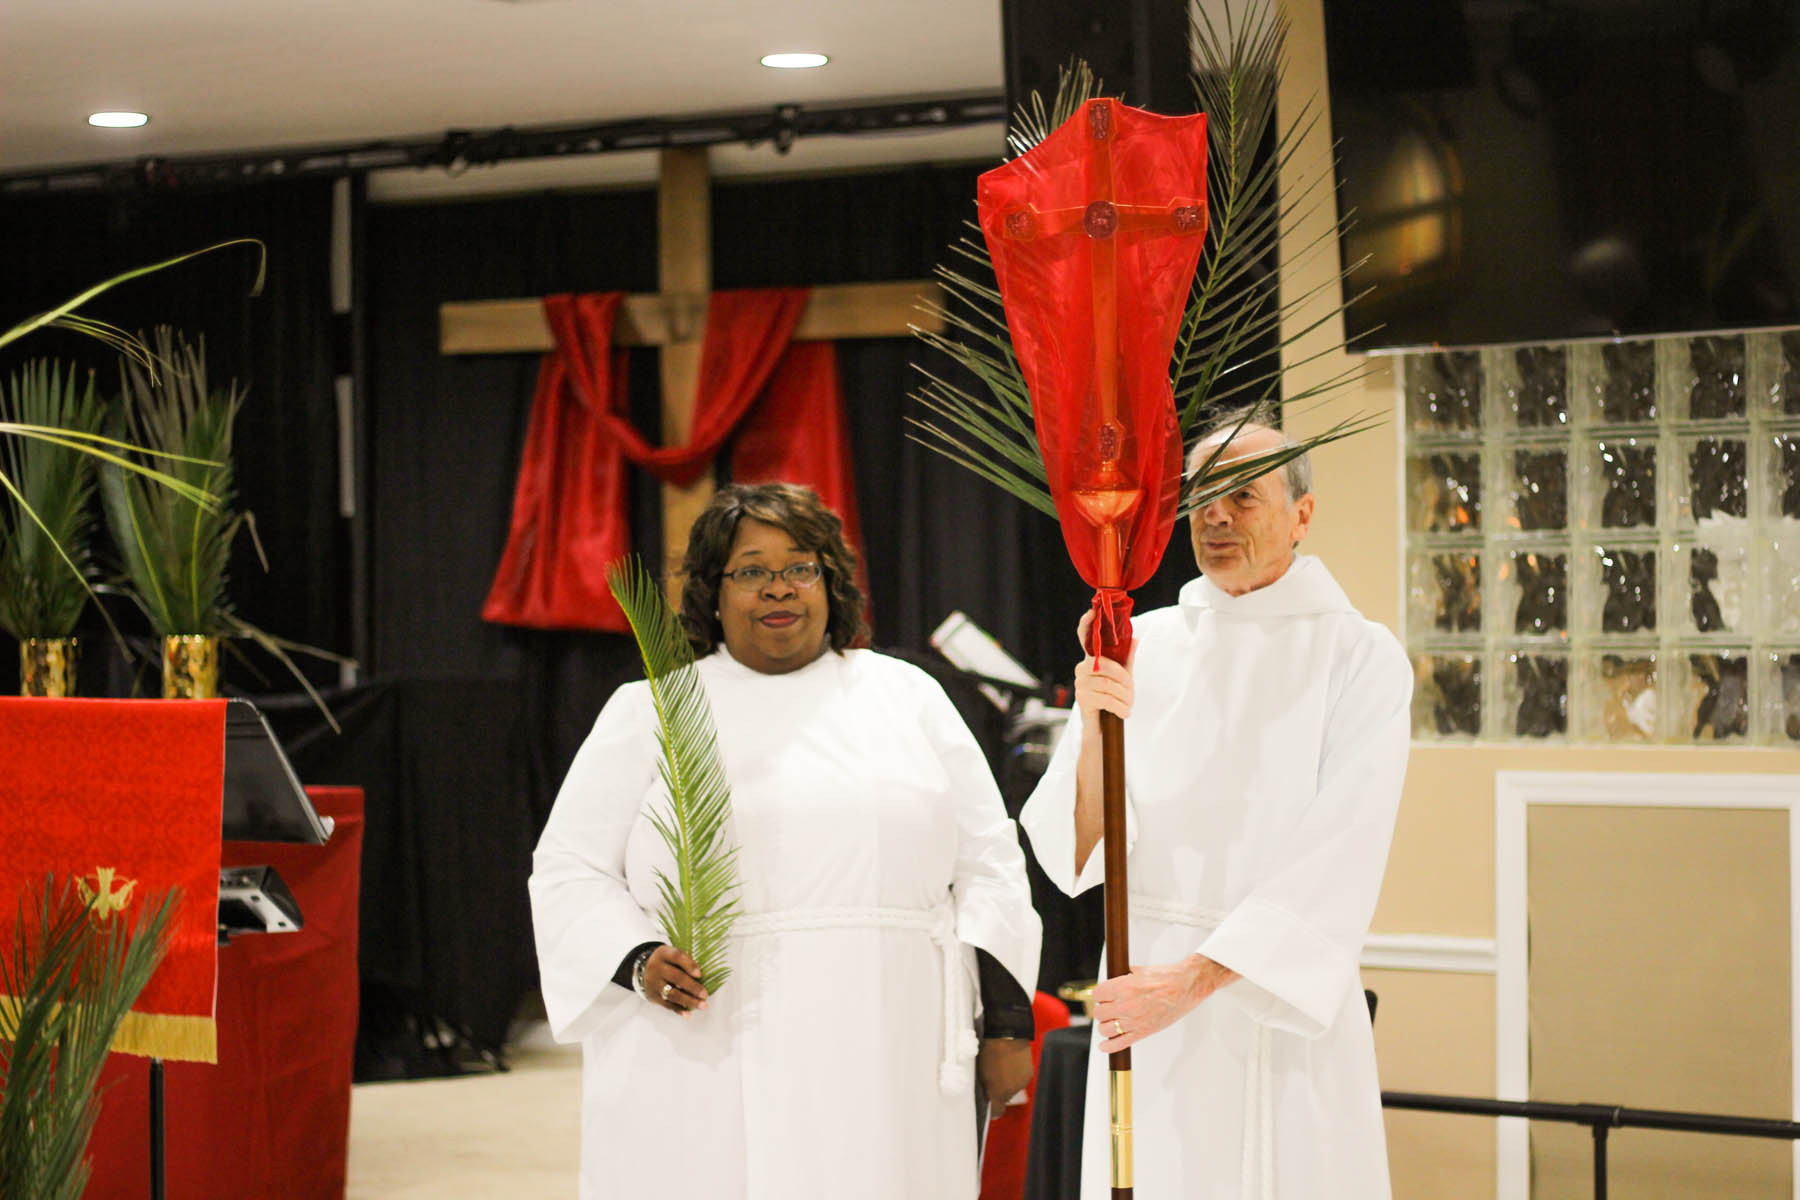 2019-04-14-WCEC-Palm-Sunday-047